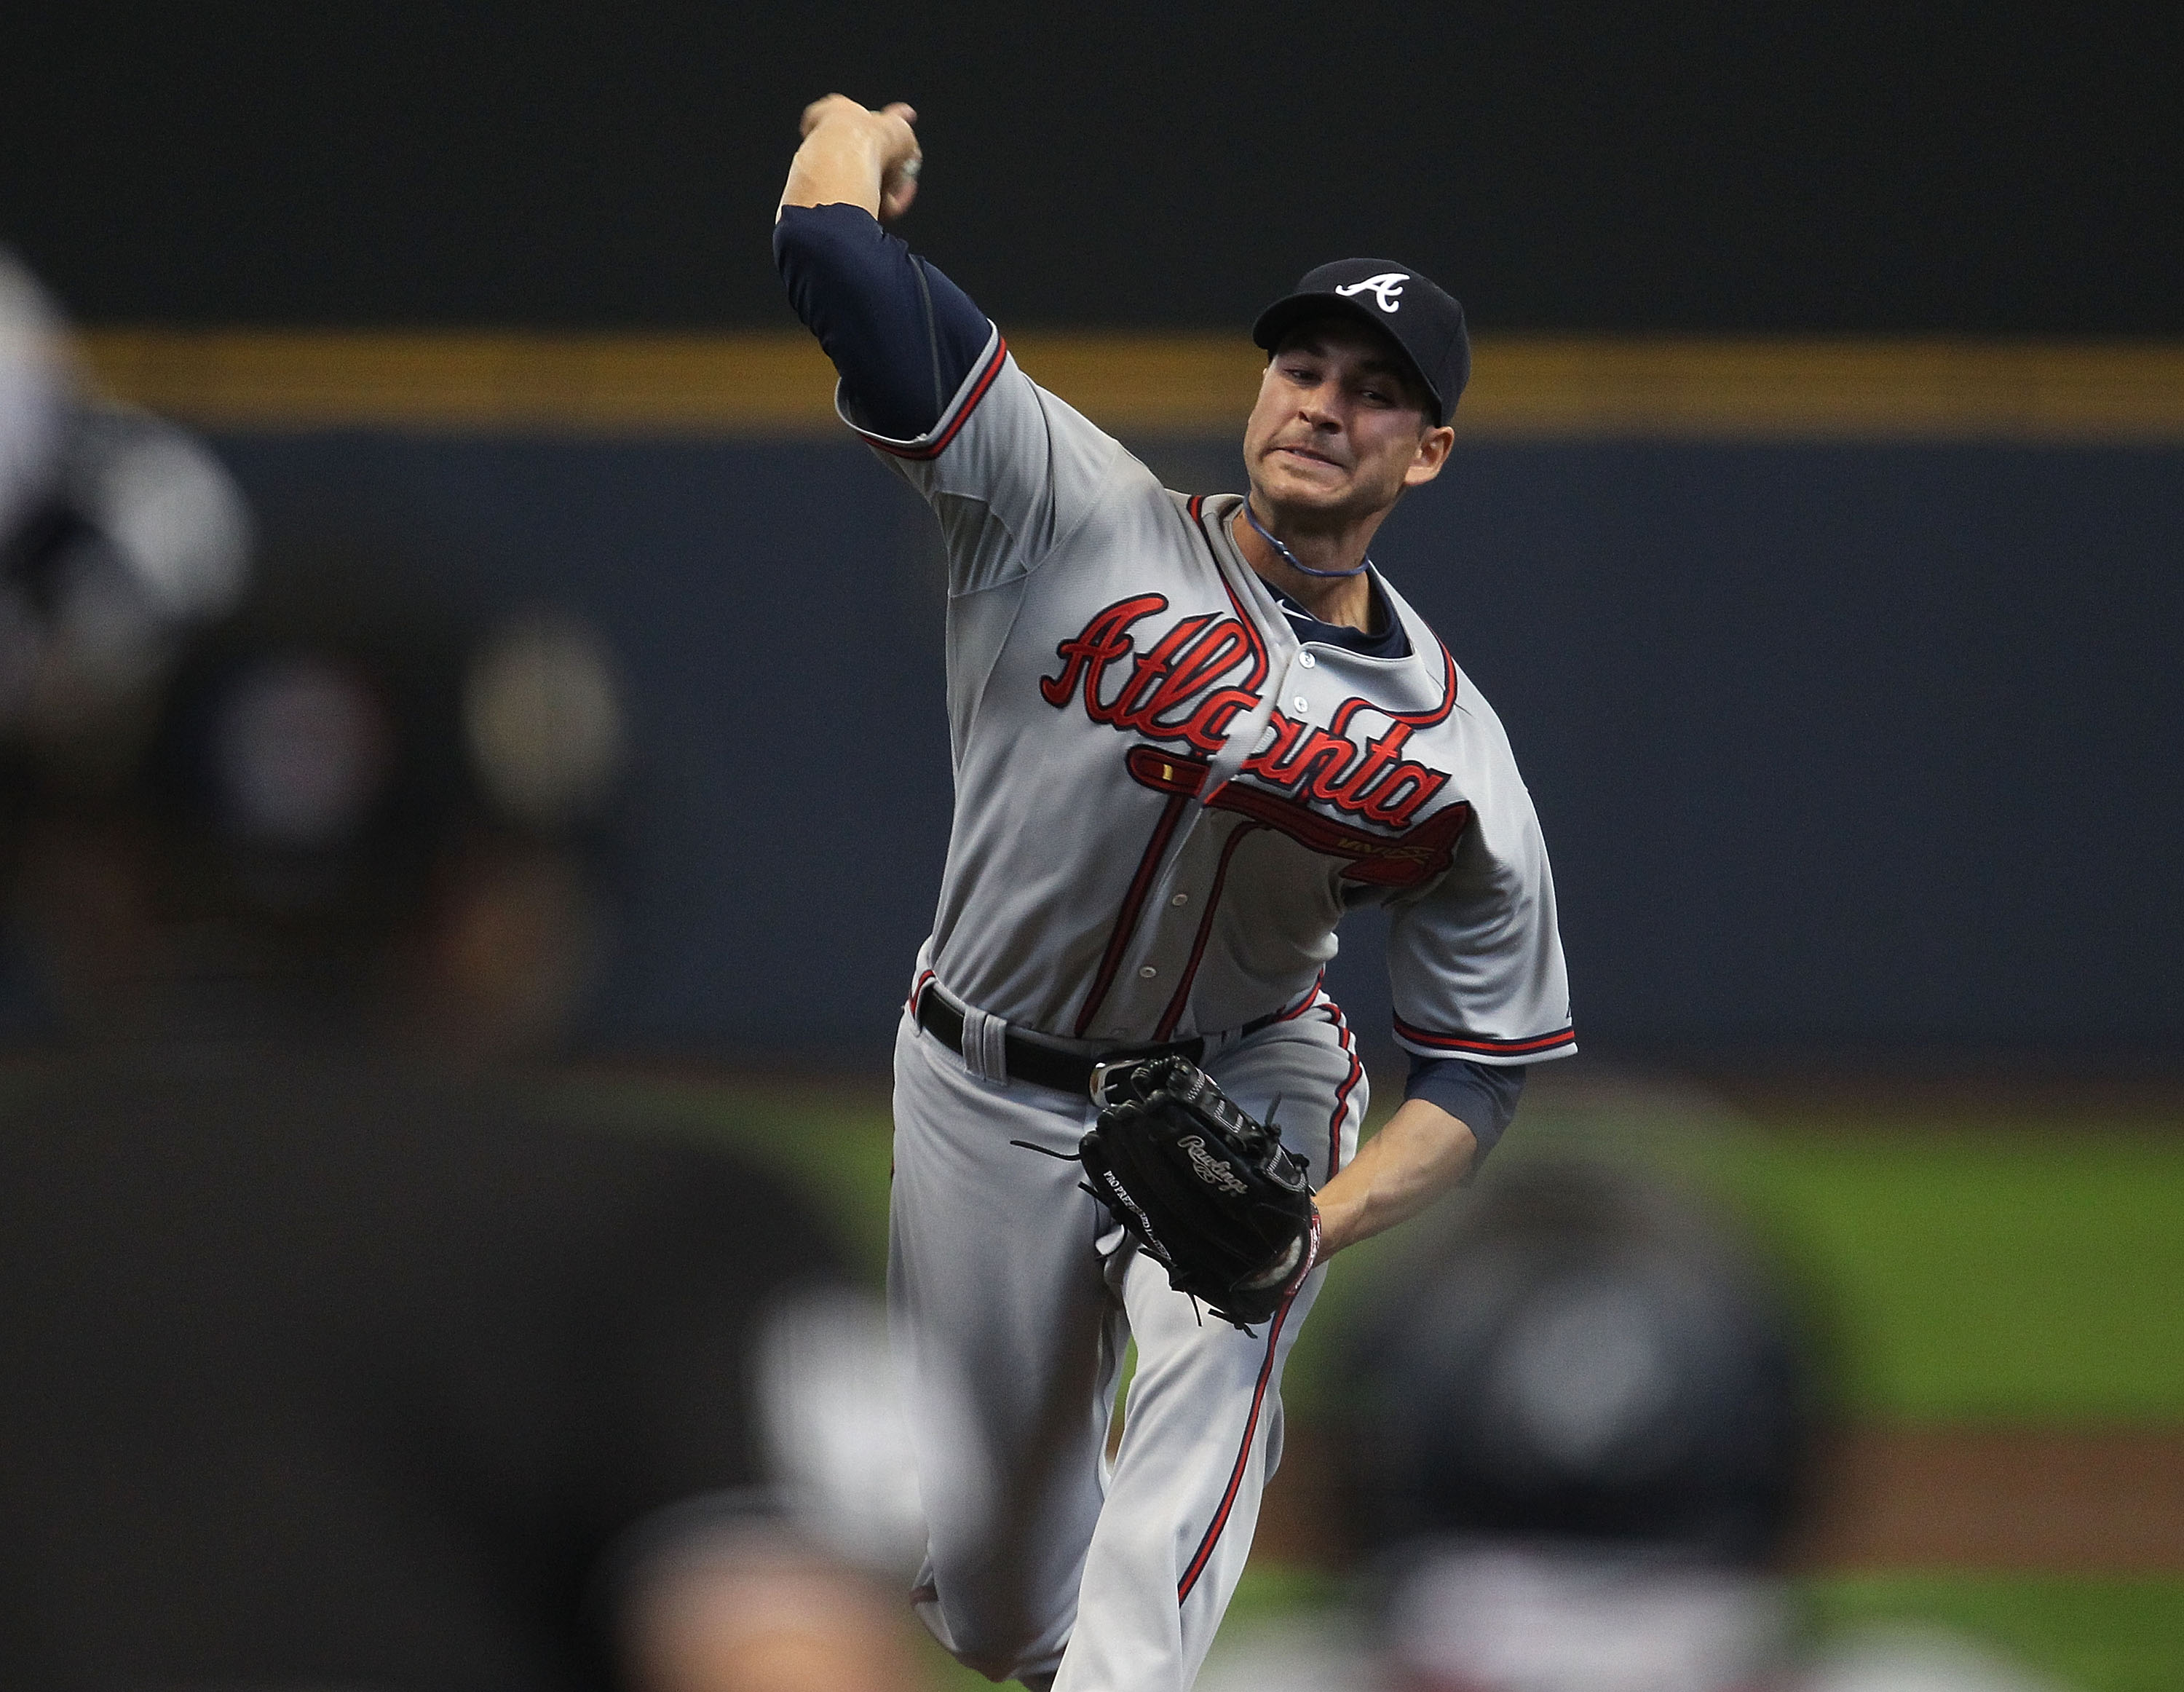 MILWAUKEE, WI - APRIL 04: Starting pitcher Brandon Beachy #37 of the Atlanta Braves delivers the ball against the Milwaukee Brewers during the home opener at Miller Park on April 4, 2011 in Milwaukee, Wisconsin. (Photo by Jonathan Daniel/Getty Images)